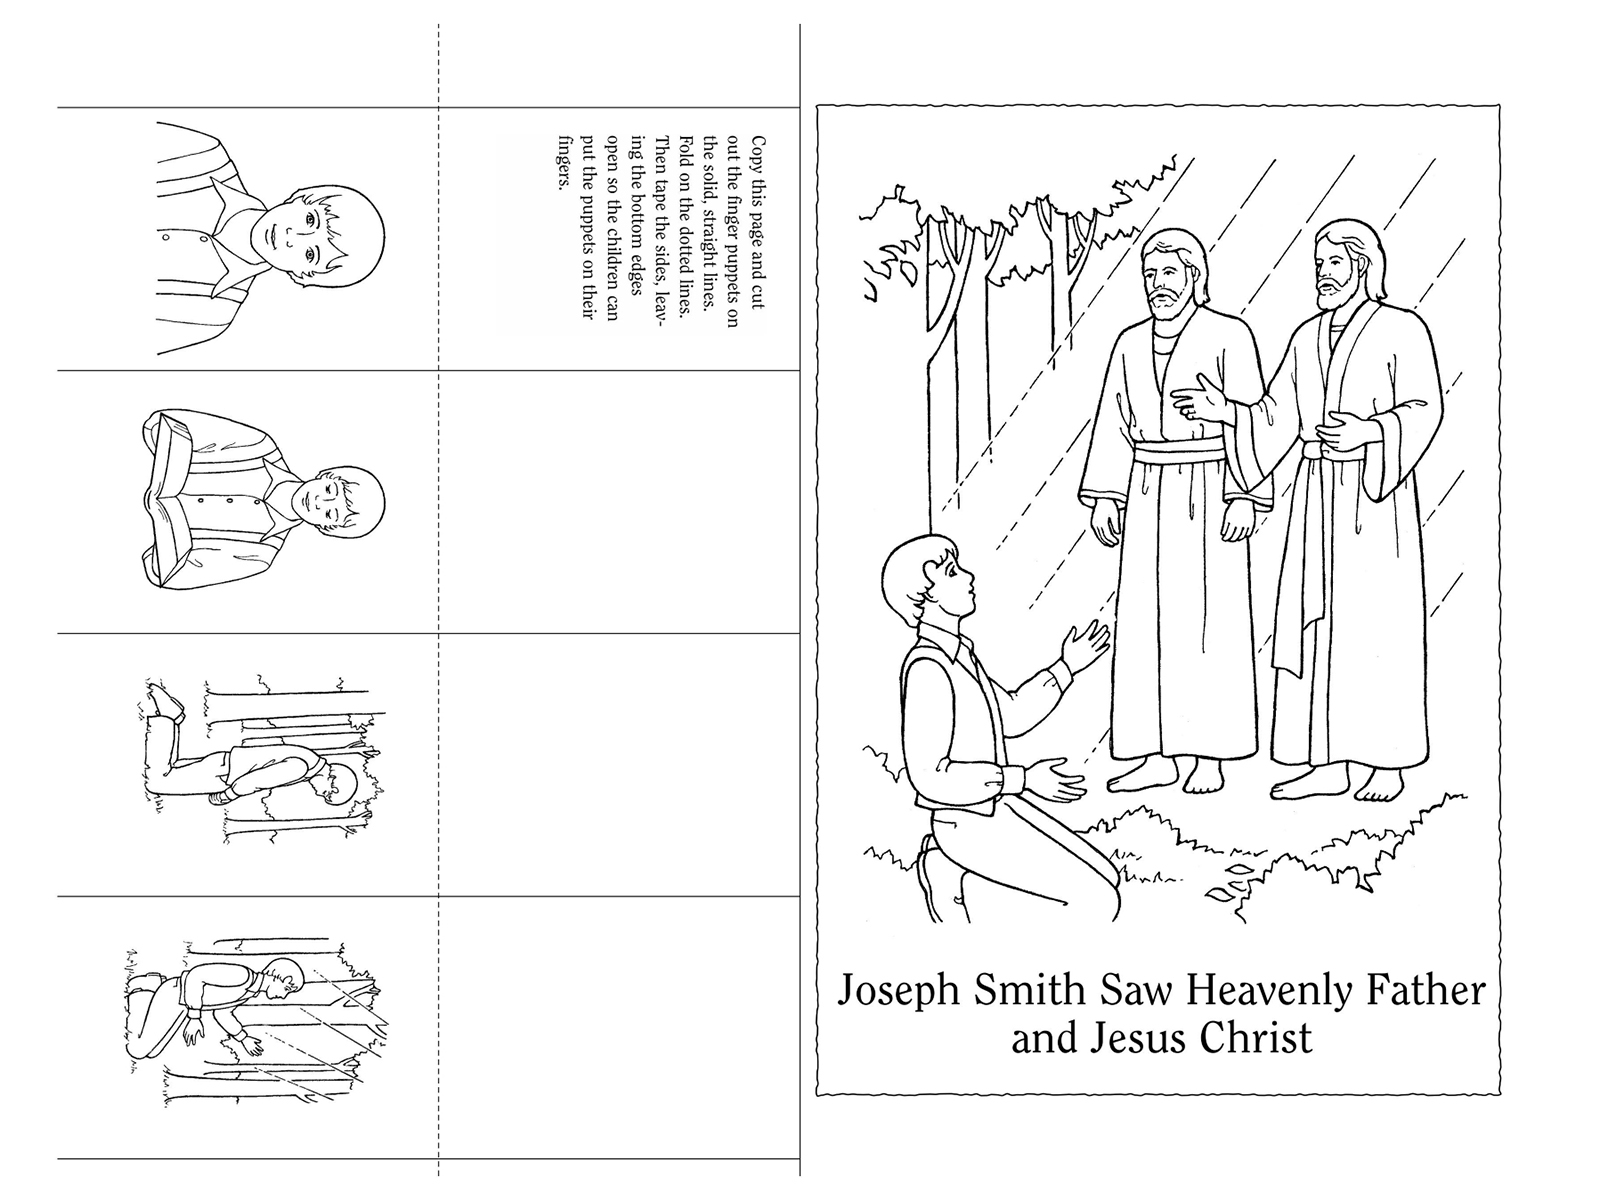 Nursery Manual Page 91 Joseph Smith Saw Heavenly Father And Jesus Rh Lds  Org Sign Language